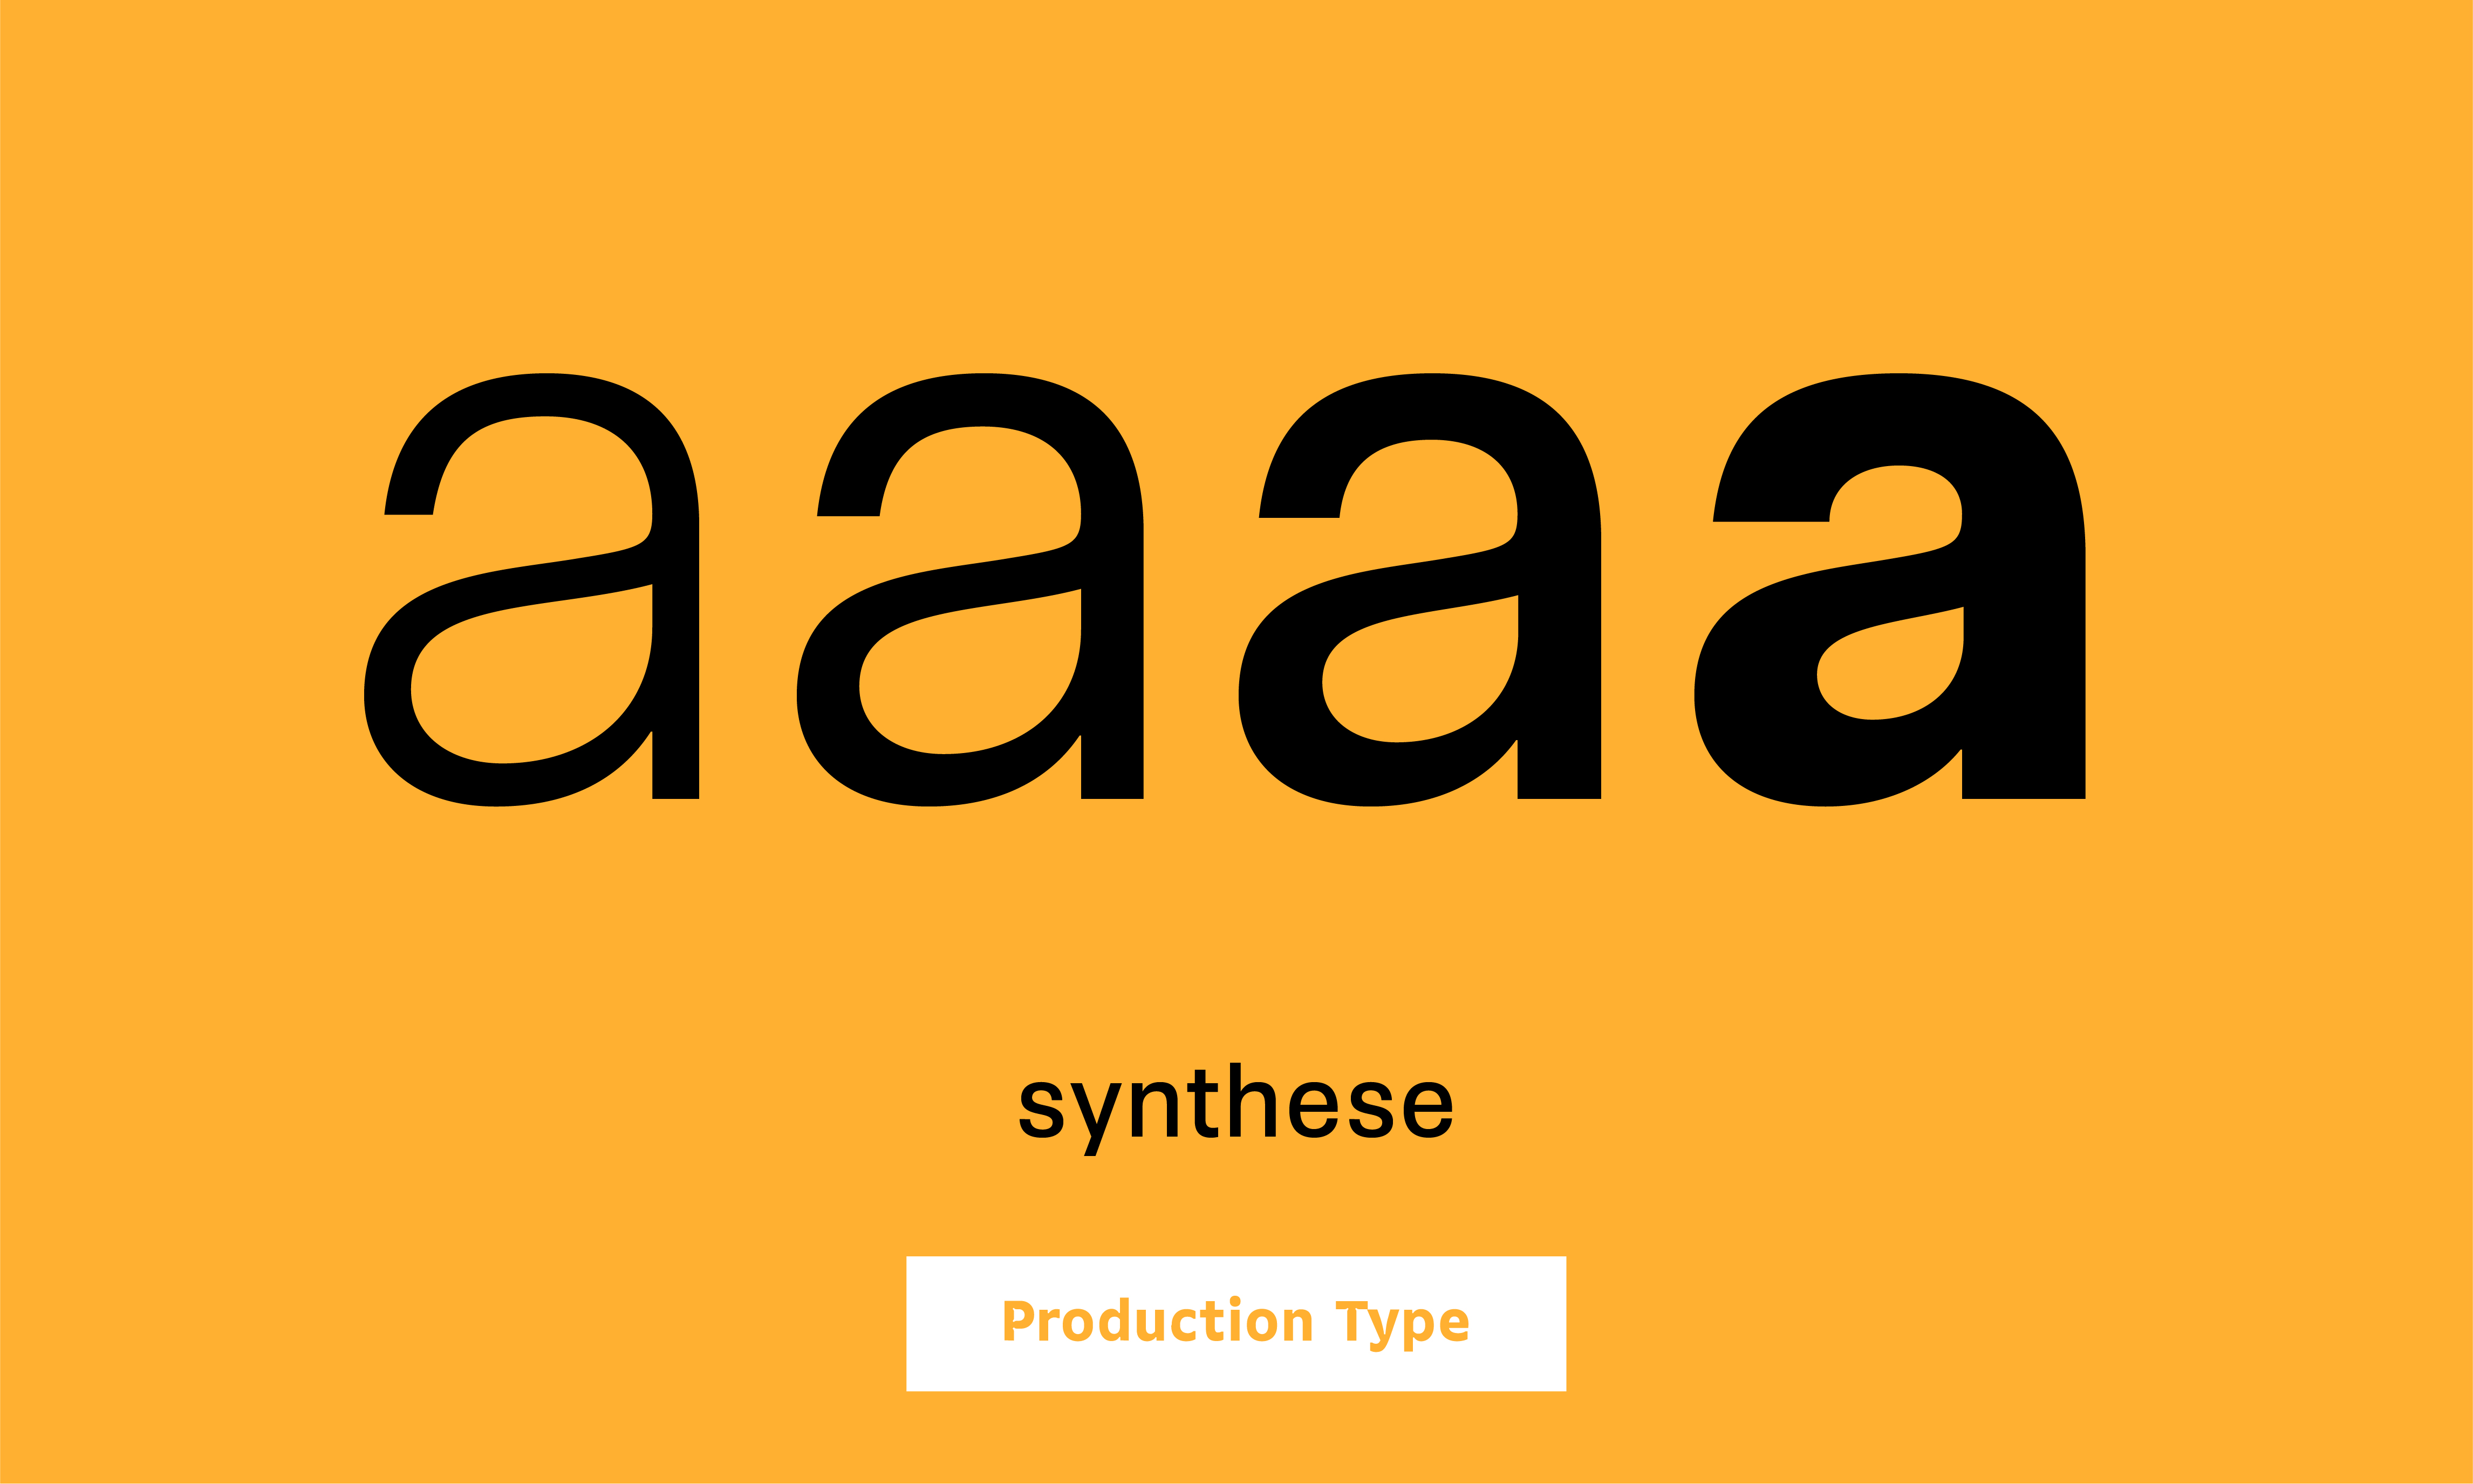 synthese 메인